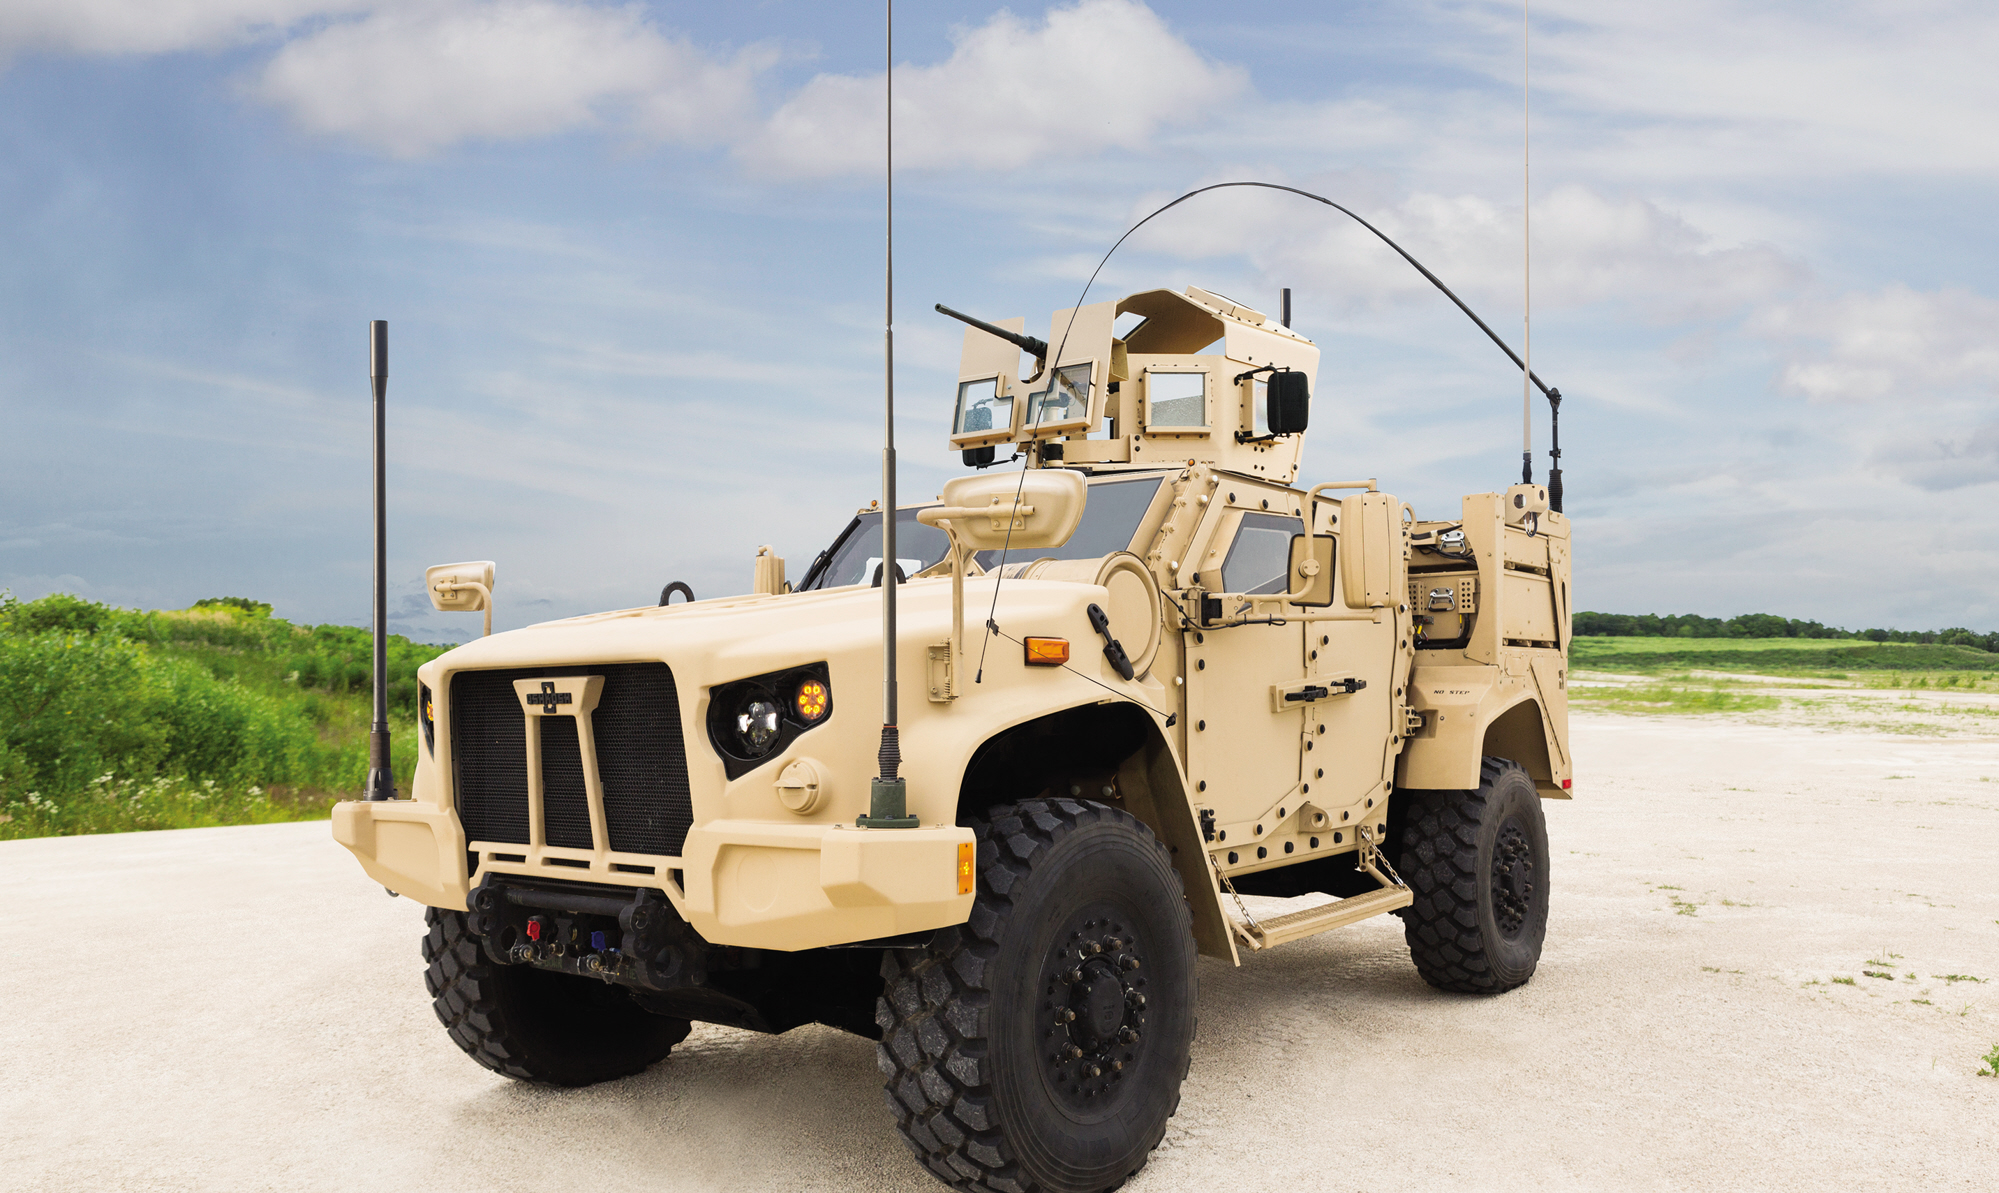 This Is The Vehicle That Will Replace The Humvee